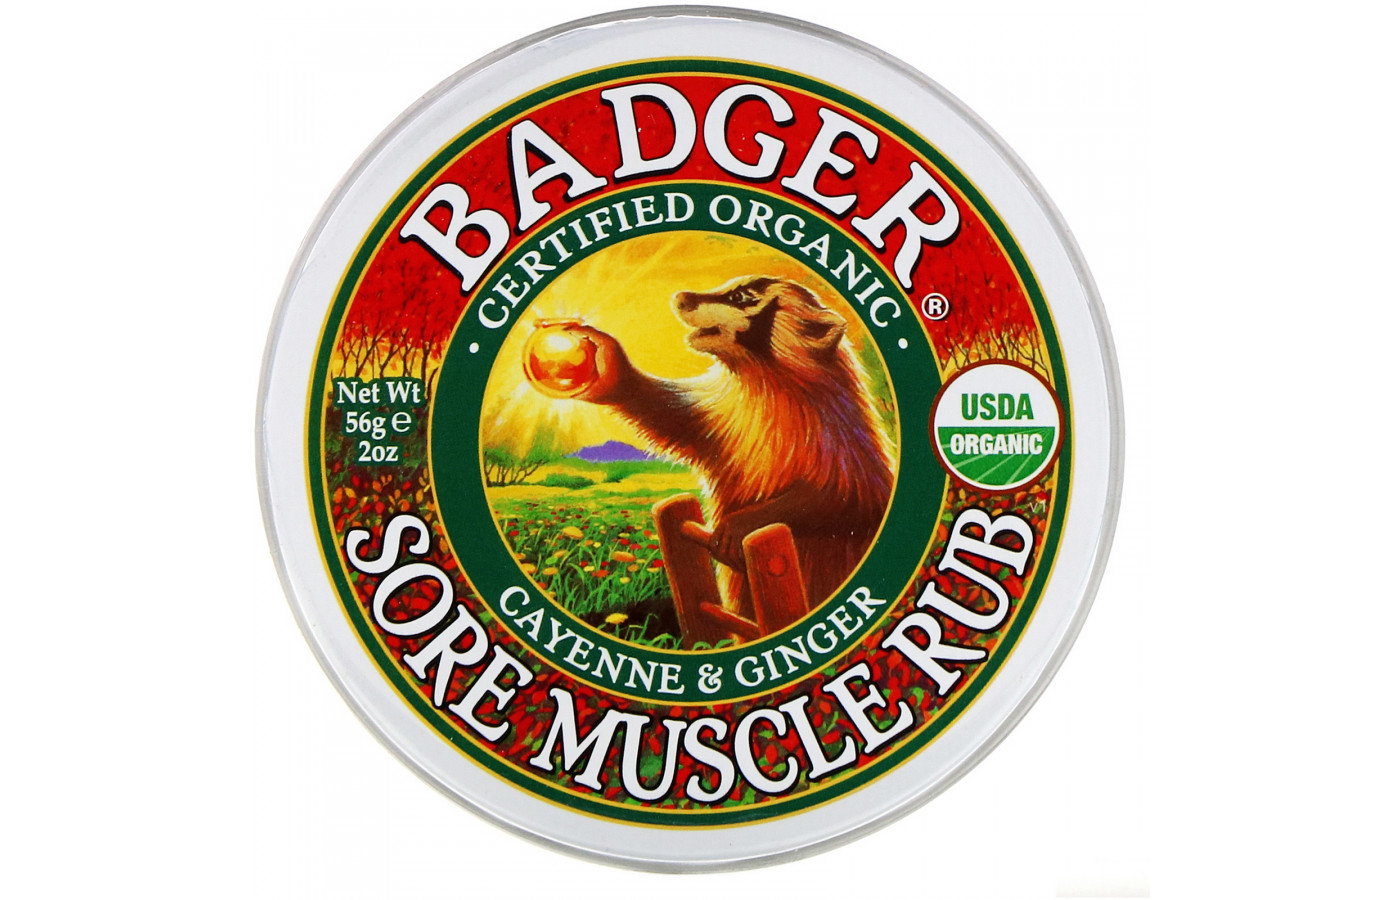 badger cayenne and ginger 2 ounce